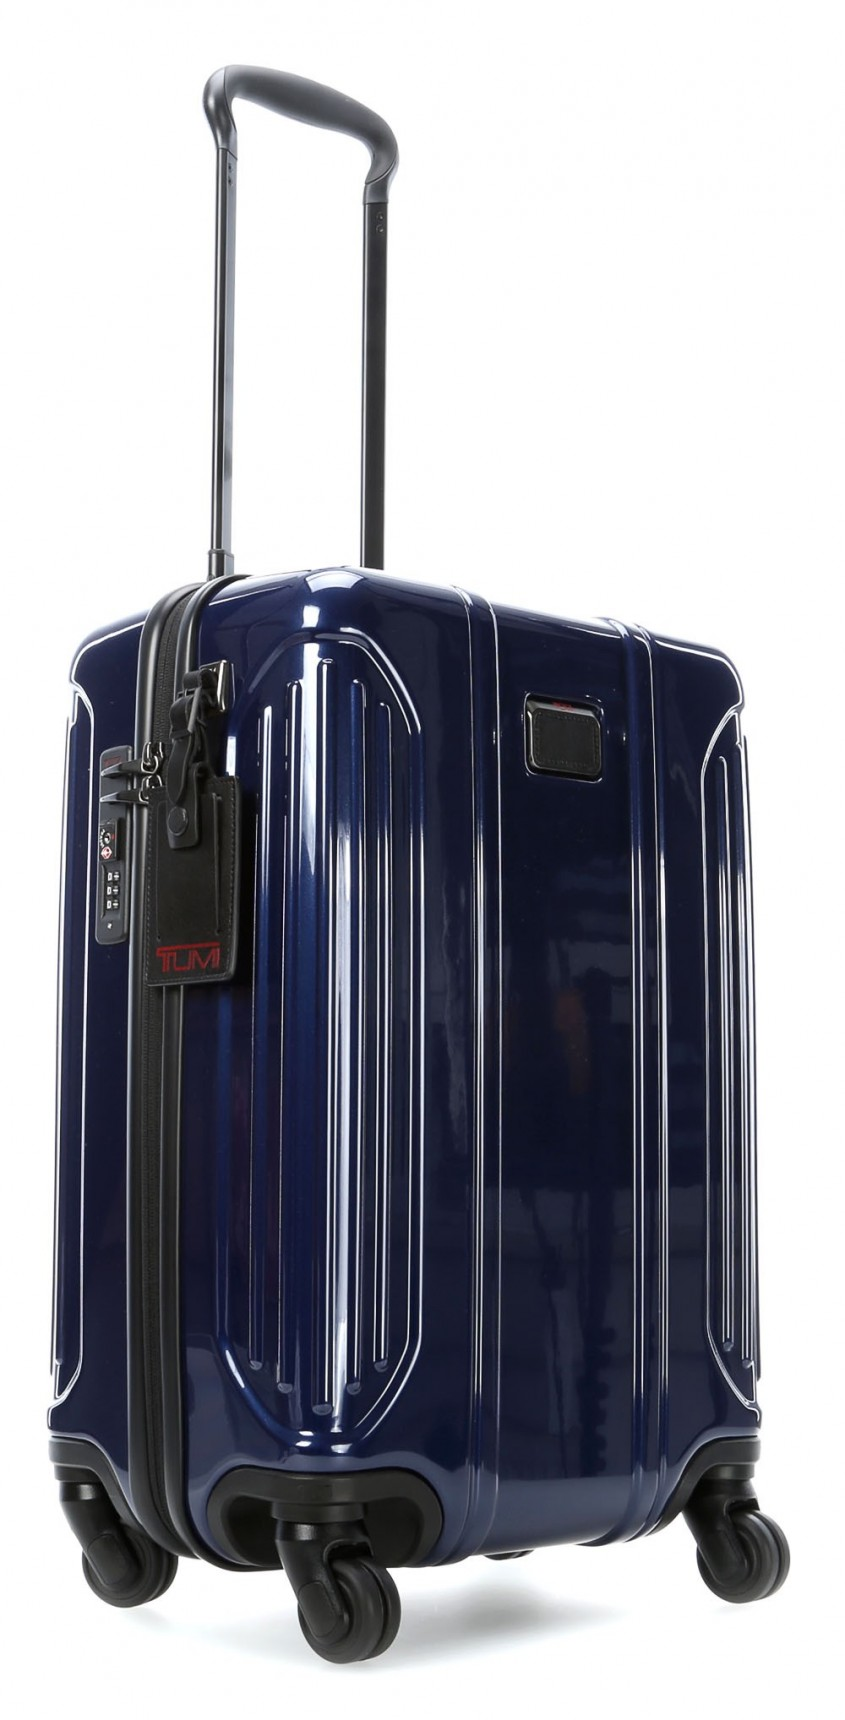 Exquisite Tumi Vapor For Packing Suitcase With Tumi Vapor Weight